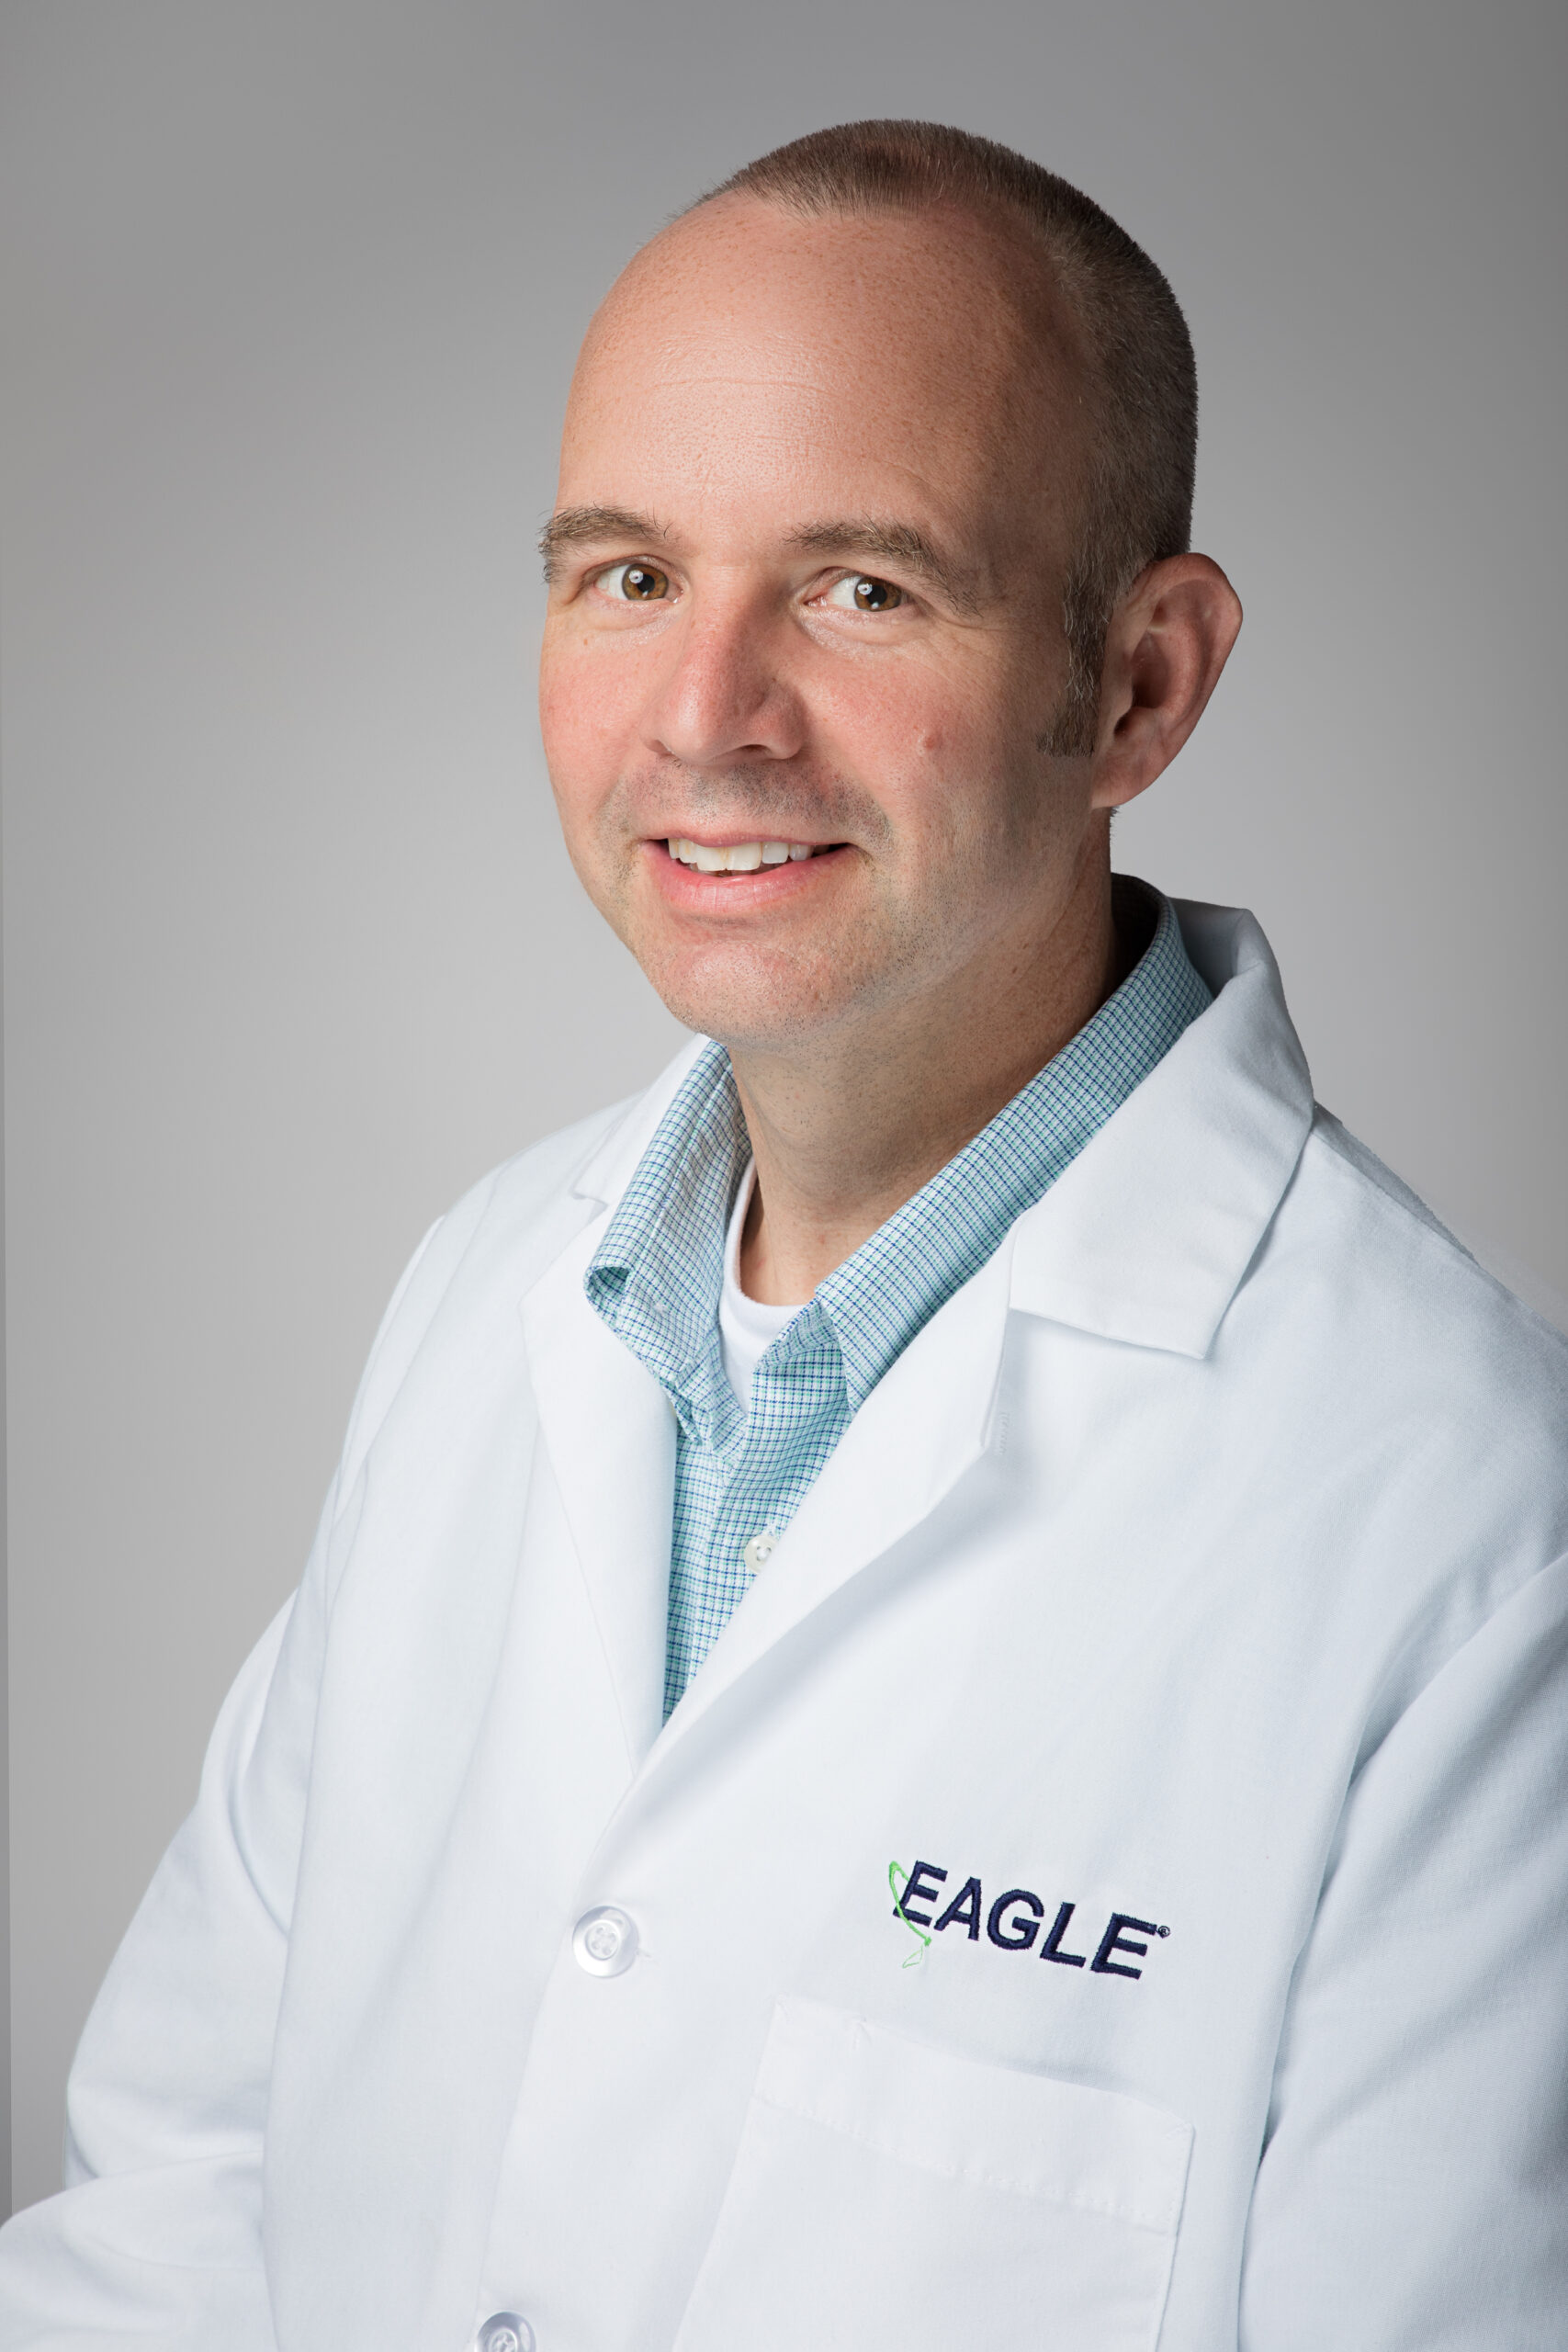 Director of Operations Frank Allen smiles while wearing an Eagle lab coat.